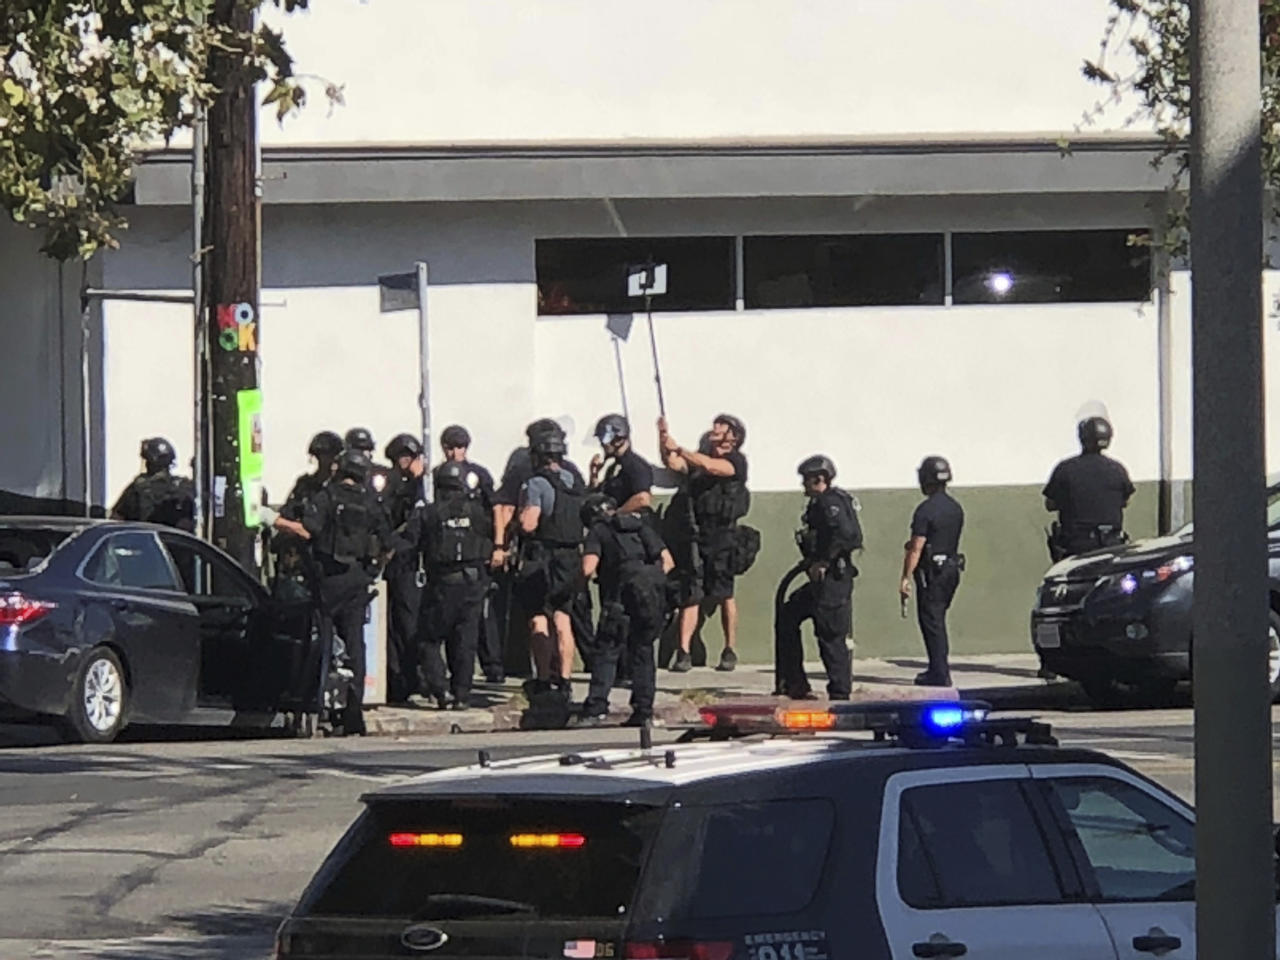 <p>Police officers use a mirror to see inside a Trader Joe's store in the Silver Lake neighborhood of Los Angeles on Saturday. Police believe a man involved in the standoff with officers shot his grandmother and girlfriend before firing at officers during a pursuit, then crashing outside the supermarket and running inside the store. (Photo: Christian Dunlop via AP) </p>